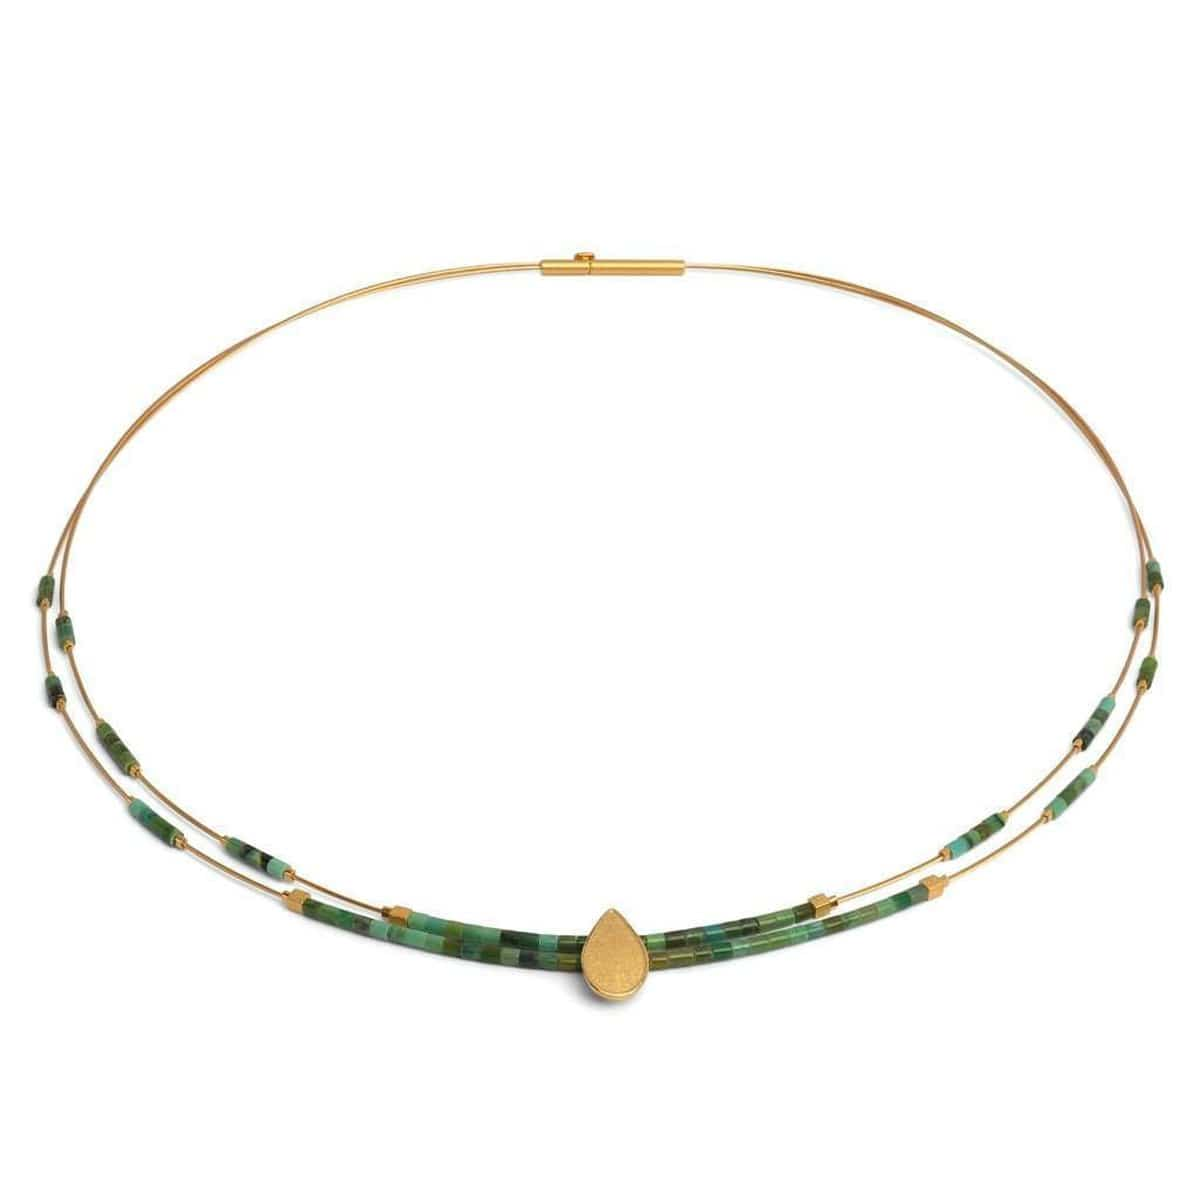 Tani Green Turquoise Necklace - 85225356